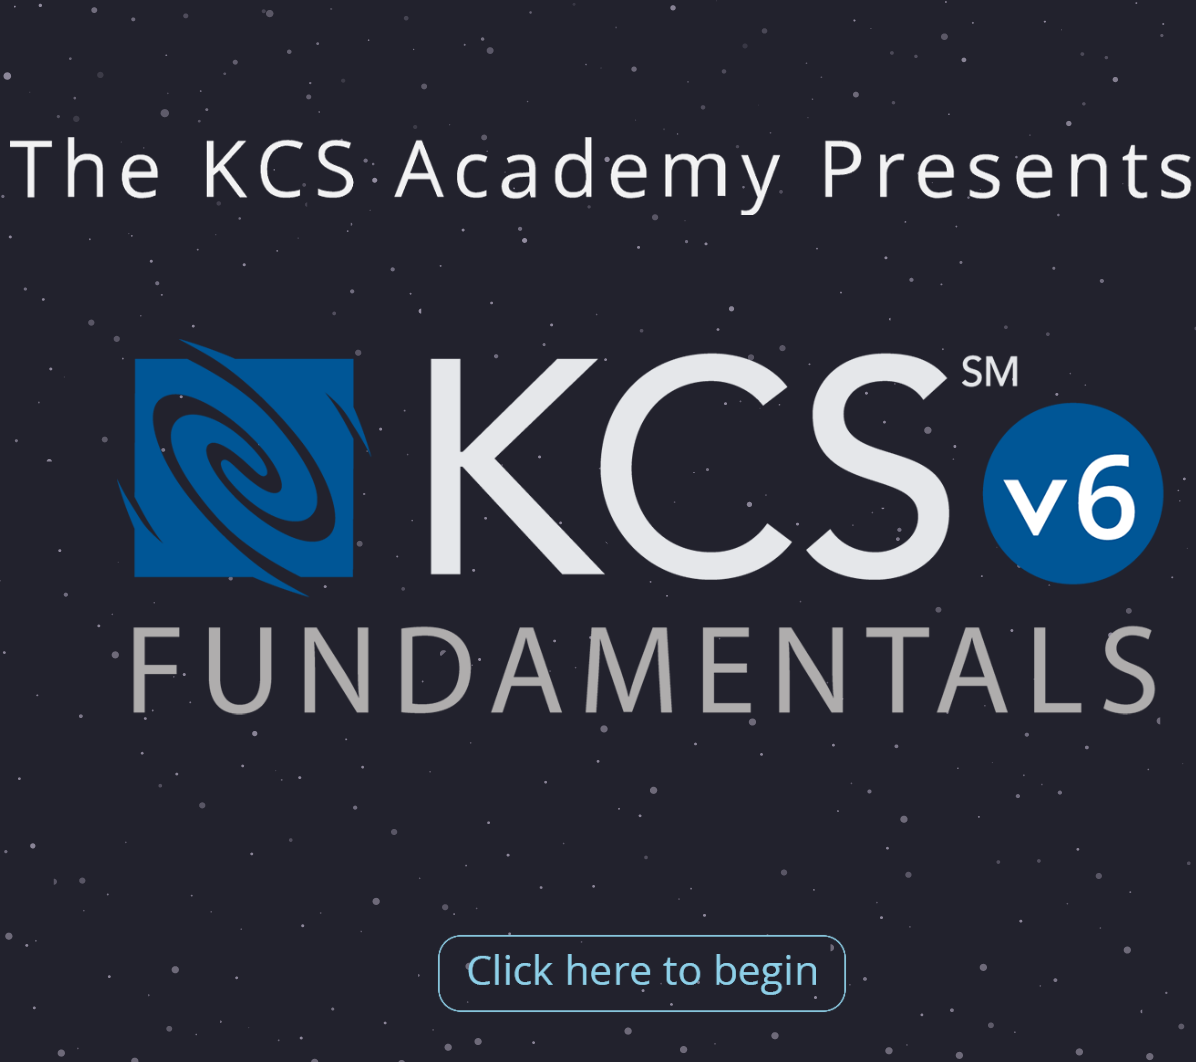 Demo the KCS v6 Fundamentals Online Training